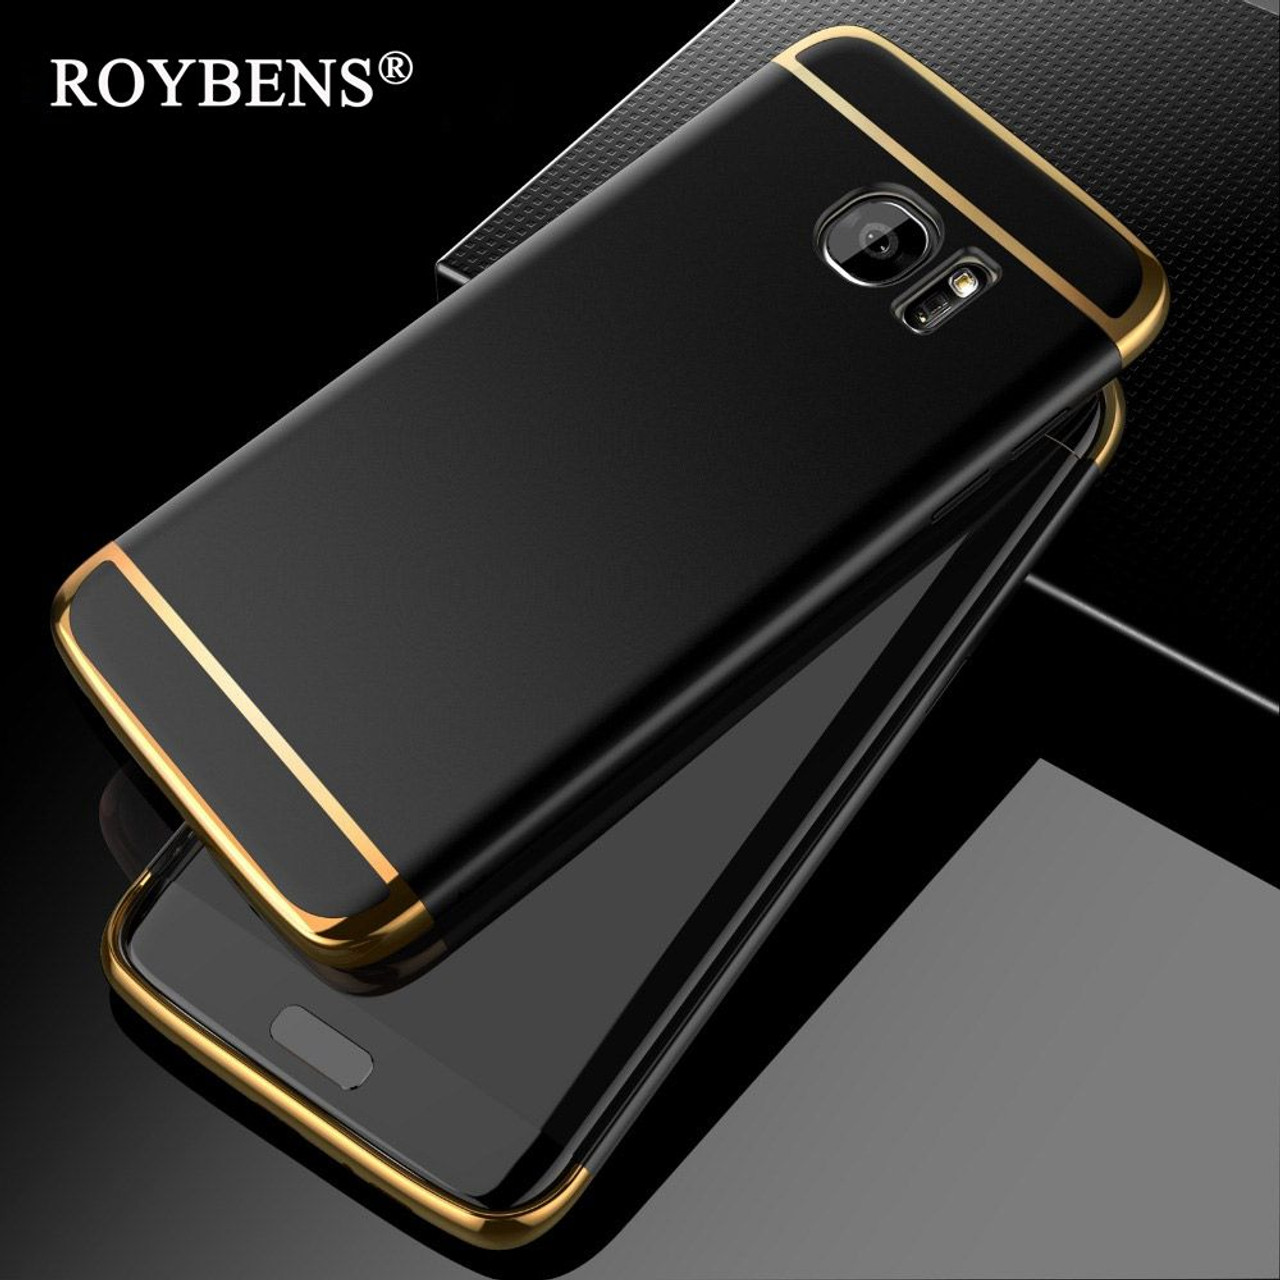 the latest fe803 b28f7 For Samsung Galaxy S7 Edge Case S8 Fashion 3in1 Hard PC Ultra Slim Cover  For Apple iPhone 6 6S 7 Plus 5 5S SE Luxury Phone Cases